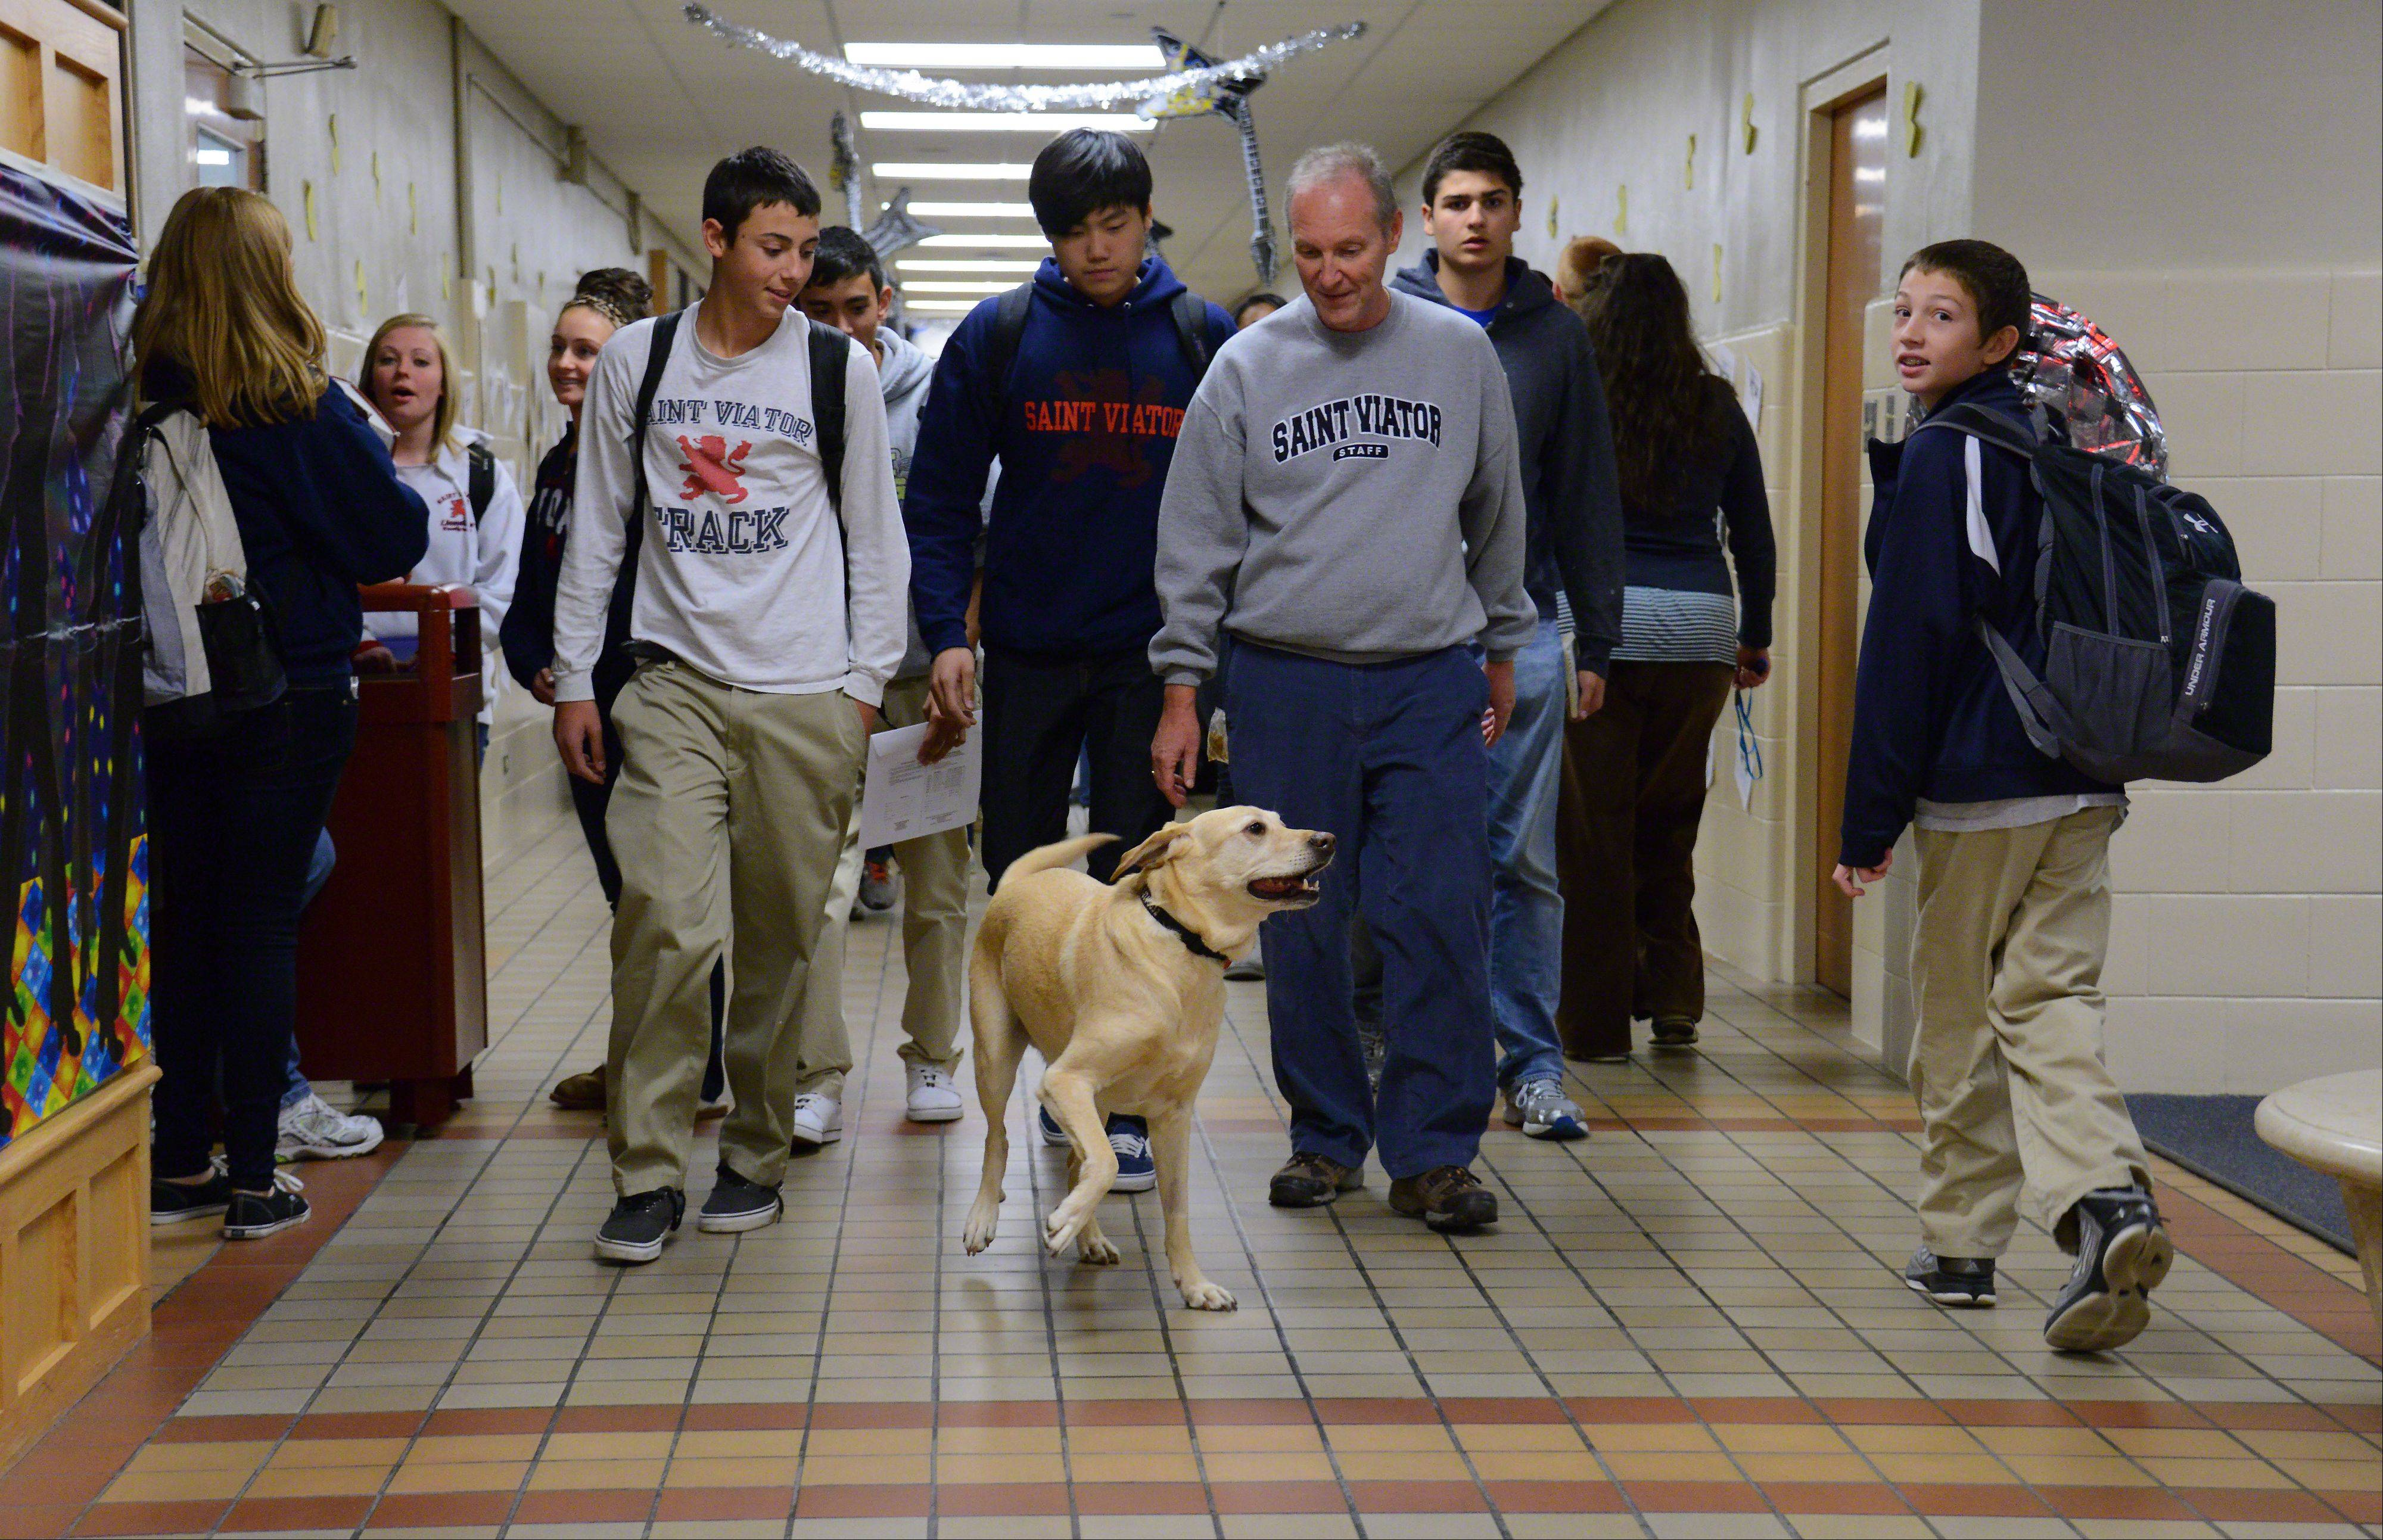 Archie gets all of the attention as Brother Rob Robertson walks him through the hall one afternoon after class at St. Viator High School.